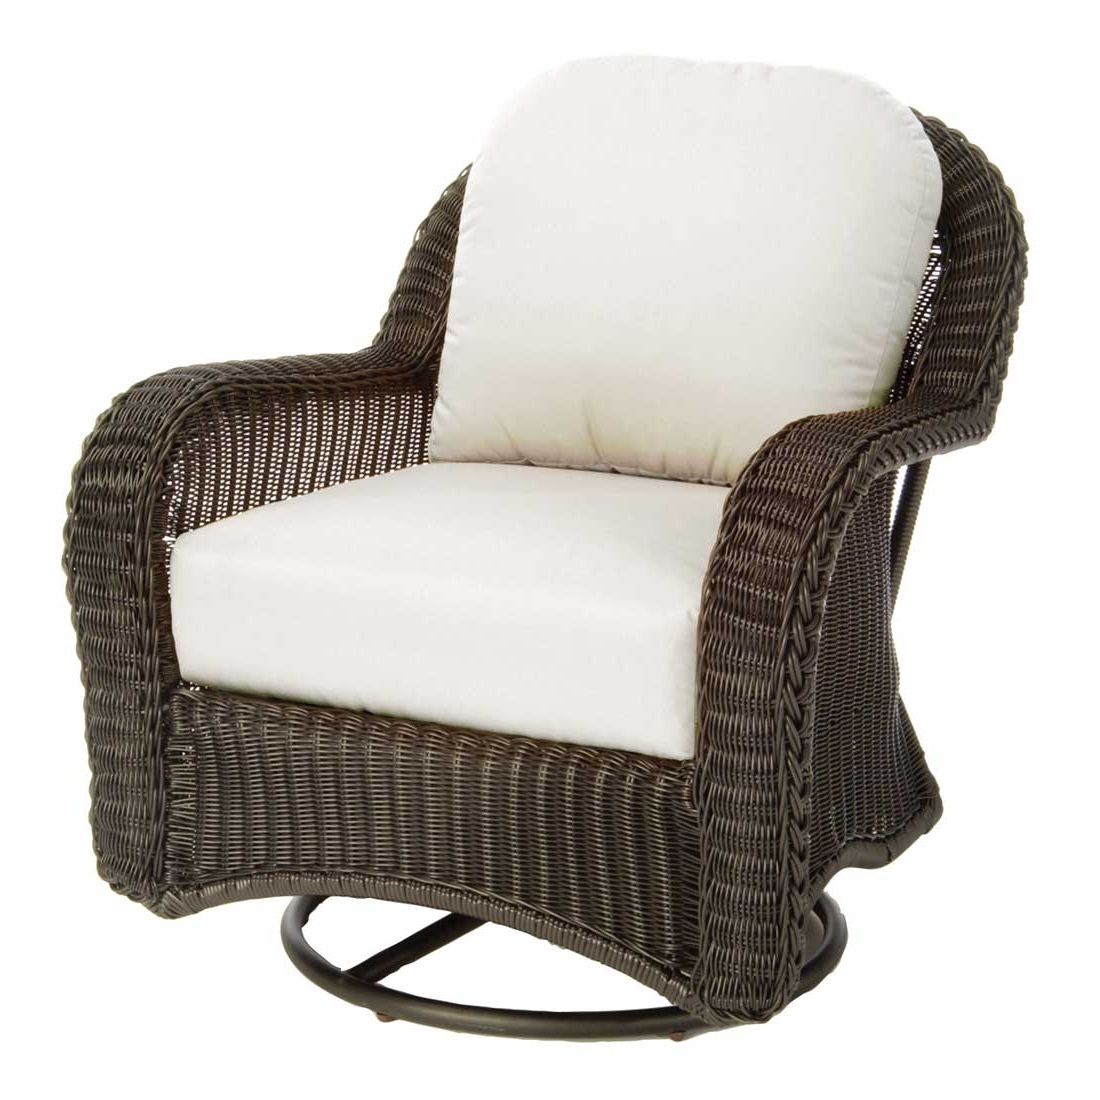 2017 Wicker Rocking Chairs And Ottoman In Classic Outdoor Wicker Swivel Glider (View 1 of 15)